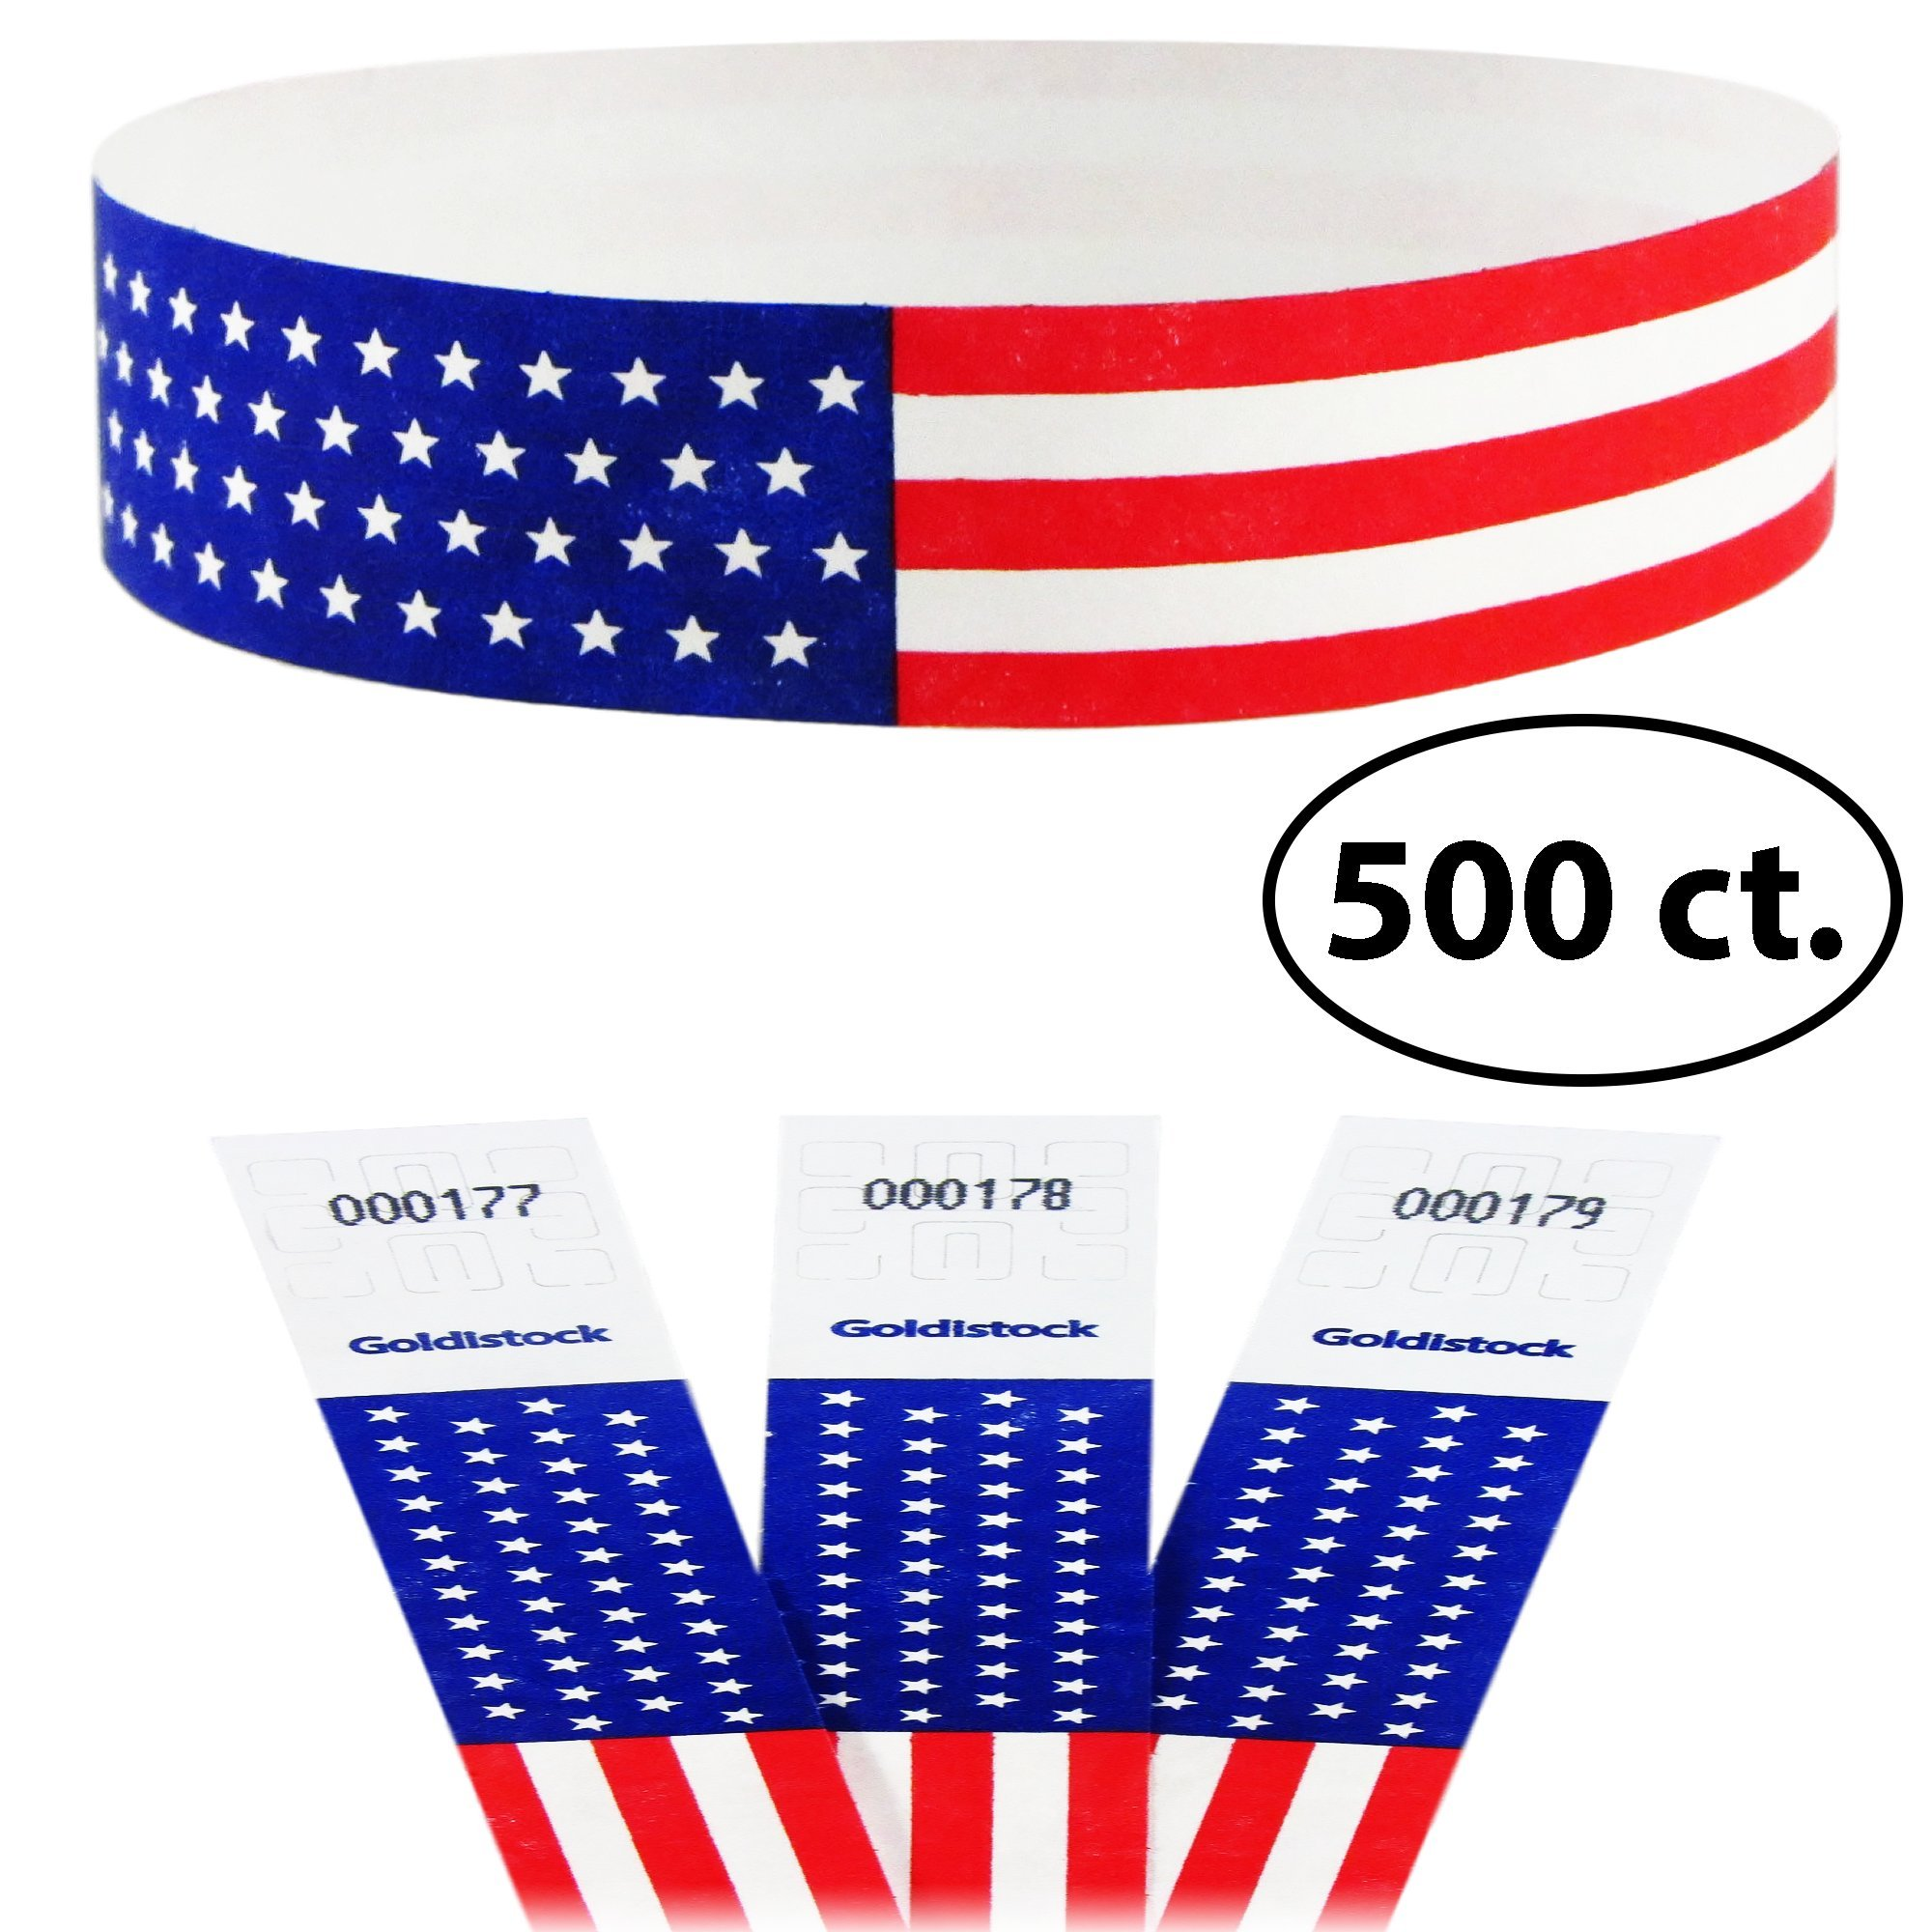 "Goldistock Select - Traditional Old Glory Flag With Stars - 3/4"" Tyvek Wristbands- 500 Count - Event Identification Bands (Paper - Like Texture)"